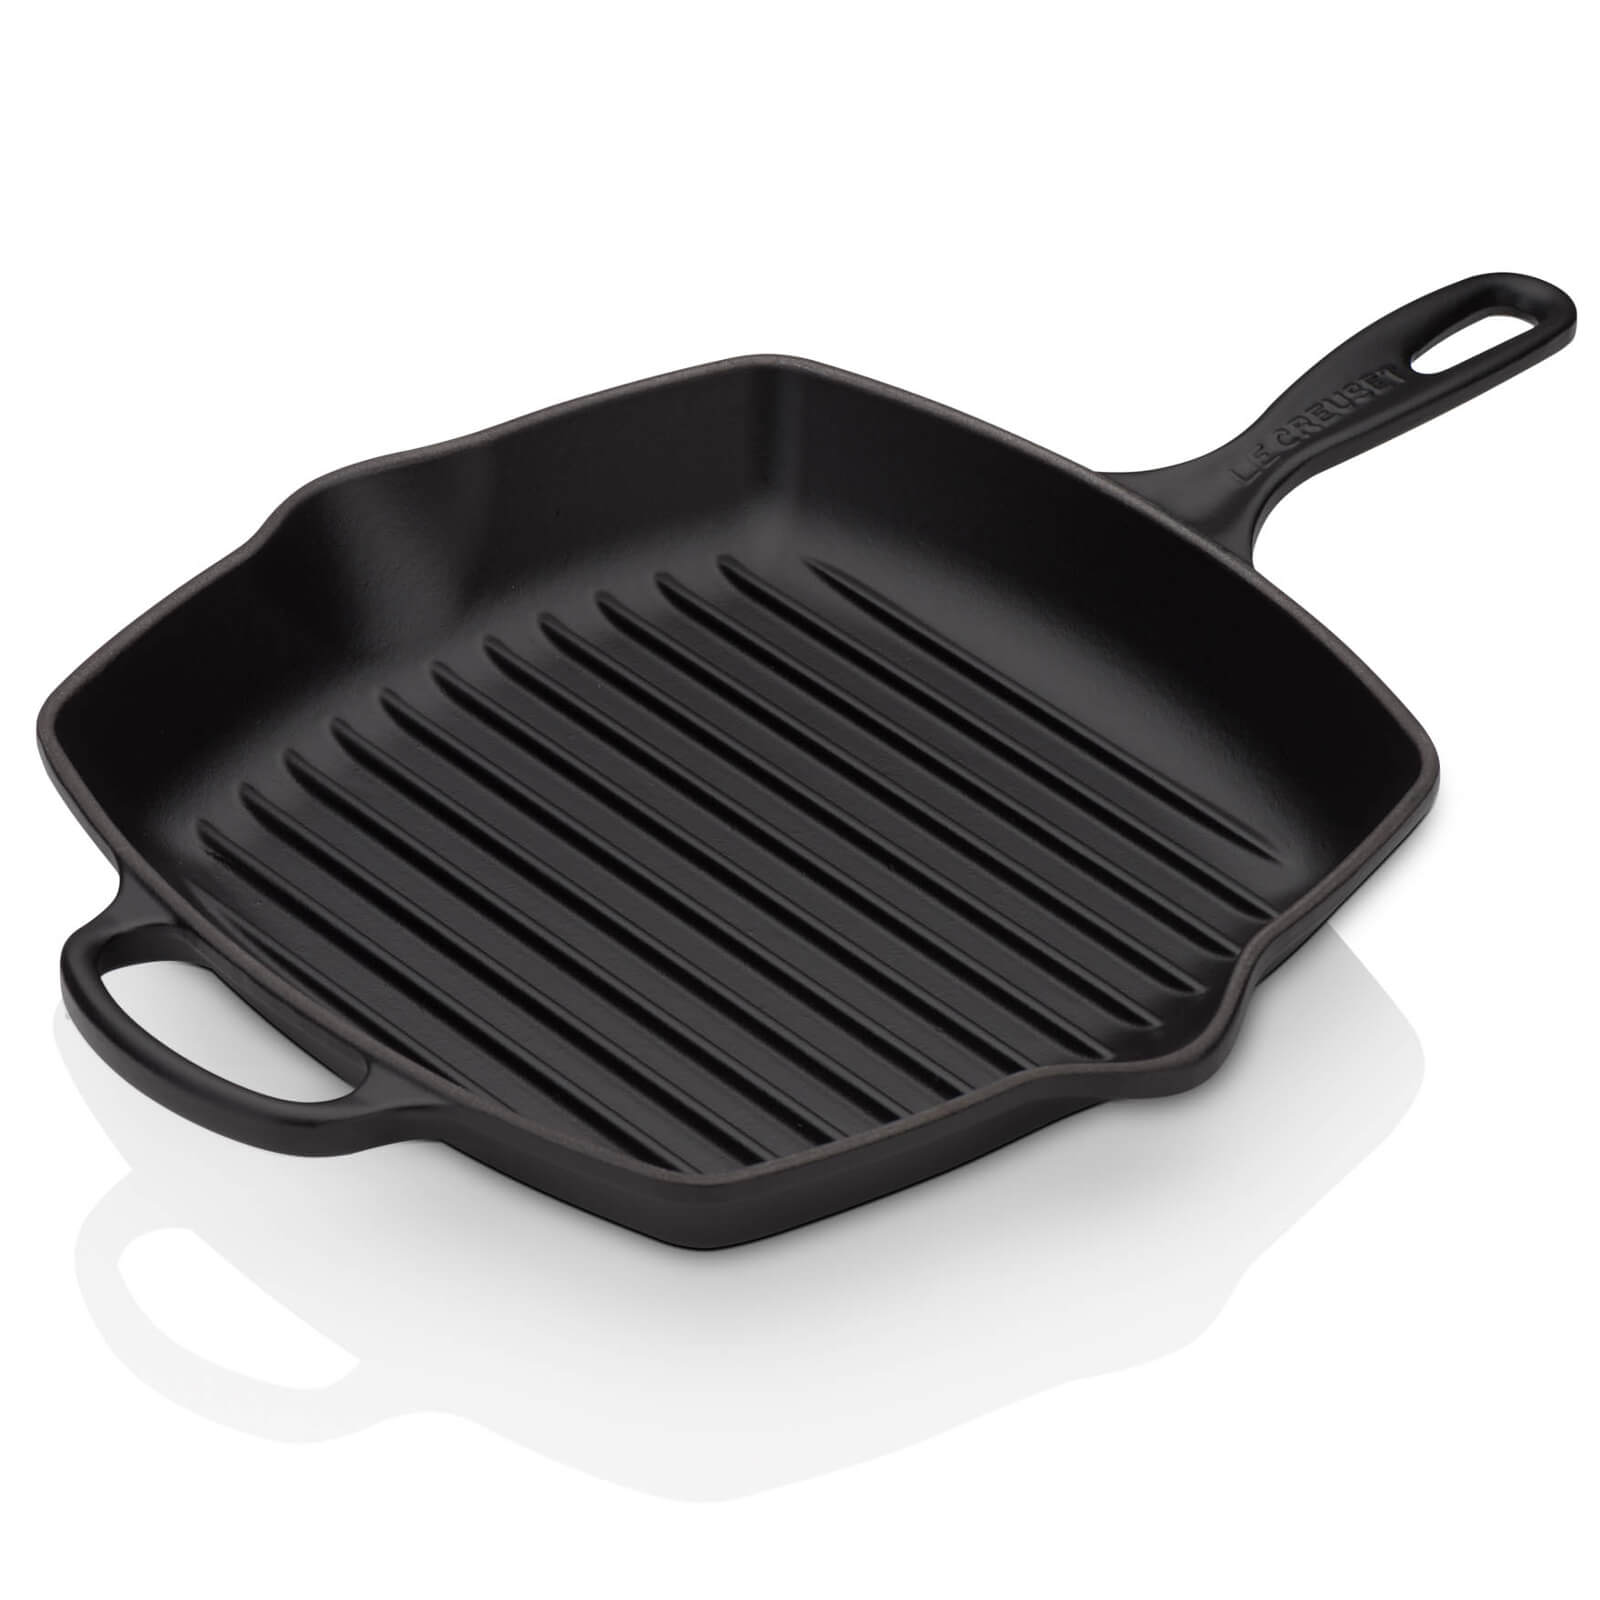 Le Creuset Cast Iron Square Grillit - 26cm - Satin Black